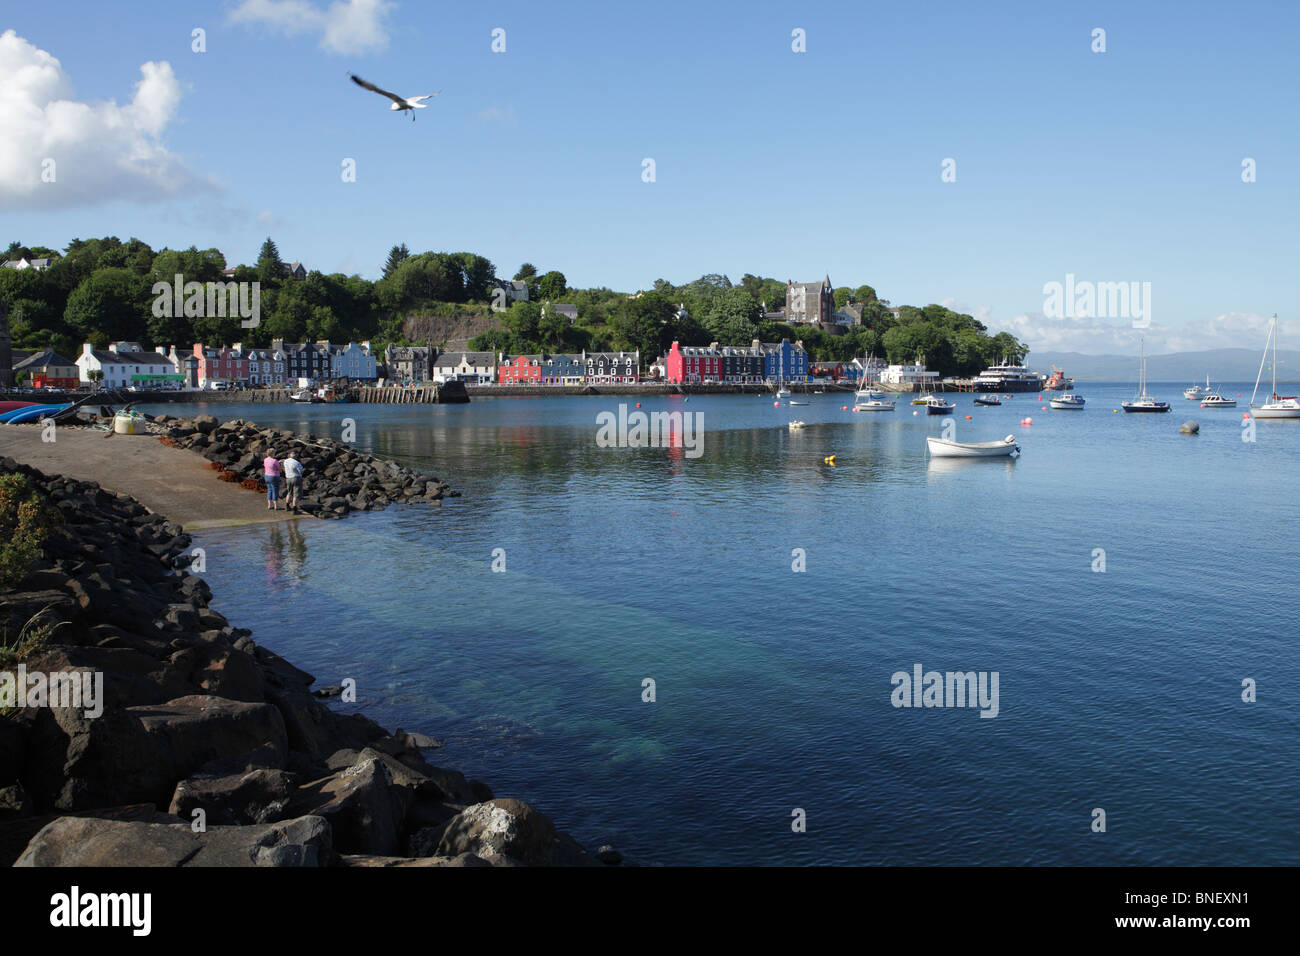 Tobermory bay on the Island of Mull - Stock Image